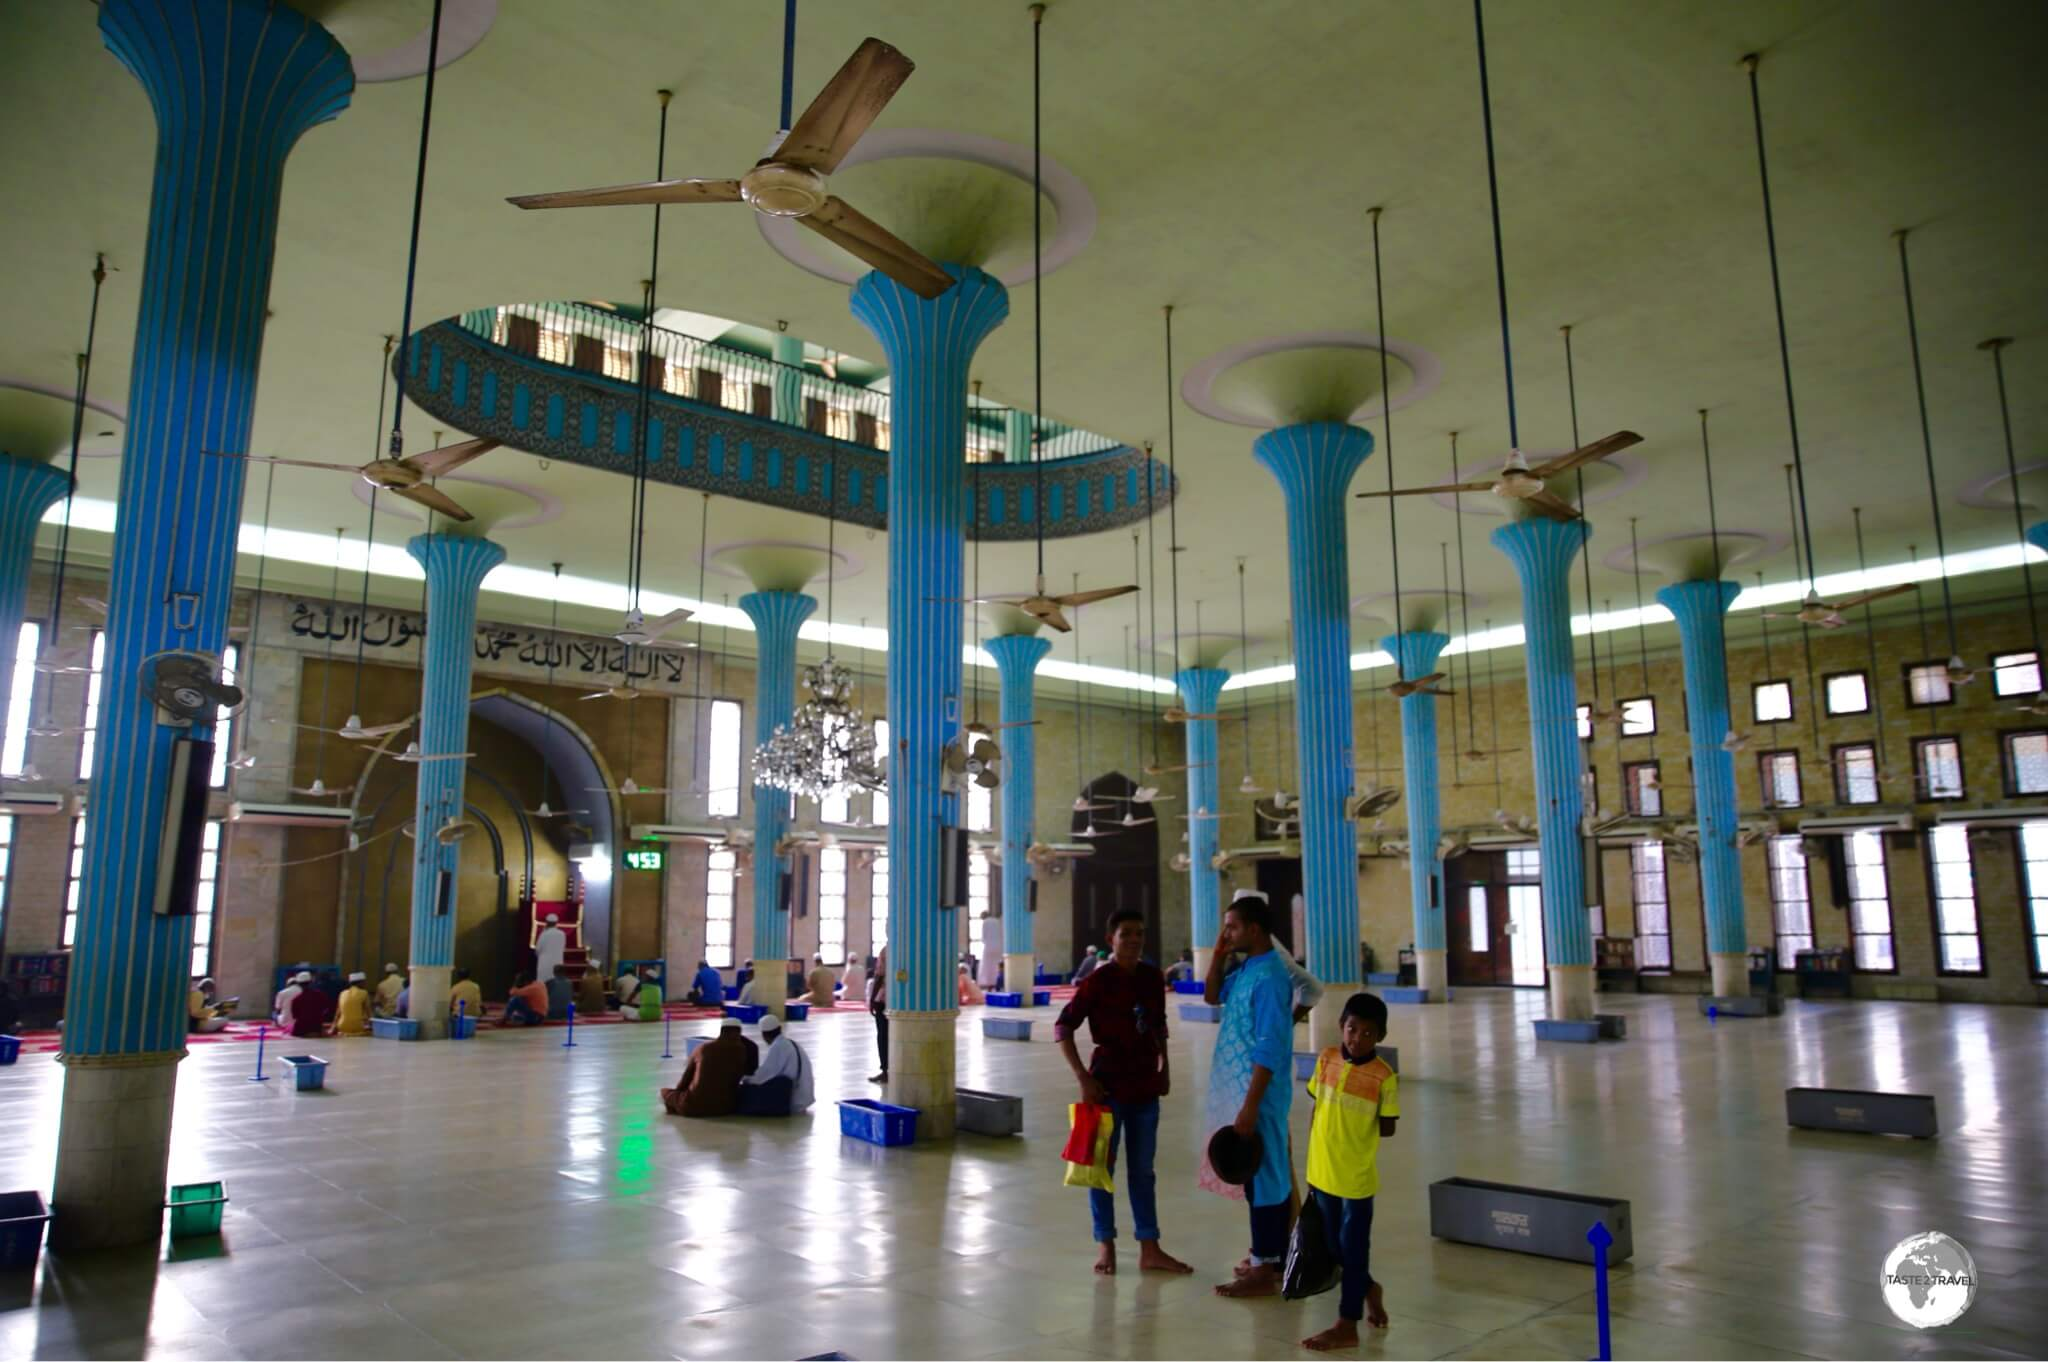 Turquoise-coloured columns provide a splash of colour in the otherwise austere interior of the Baitul Mukarram mosque.